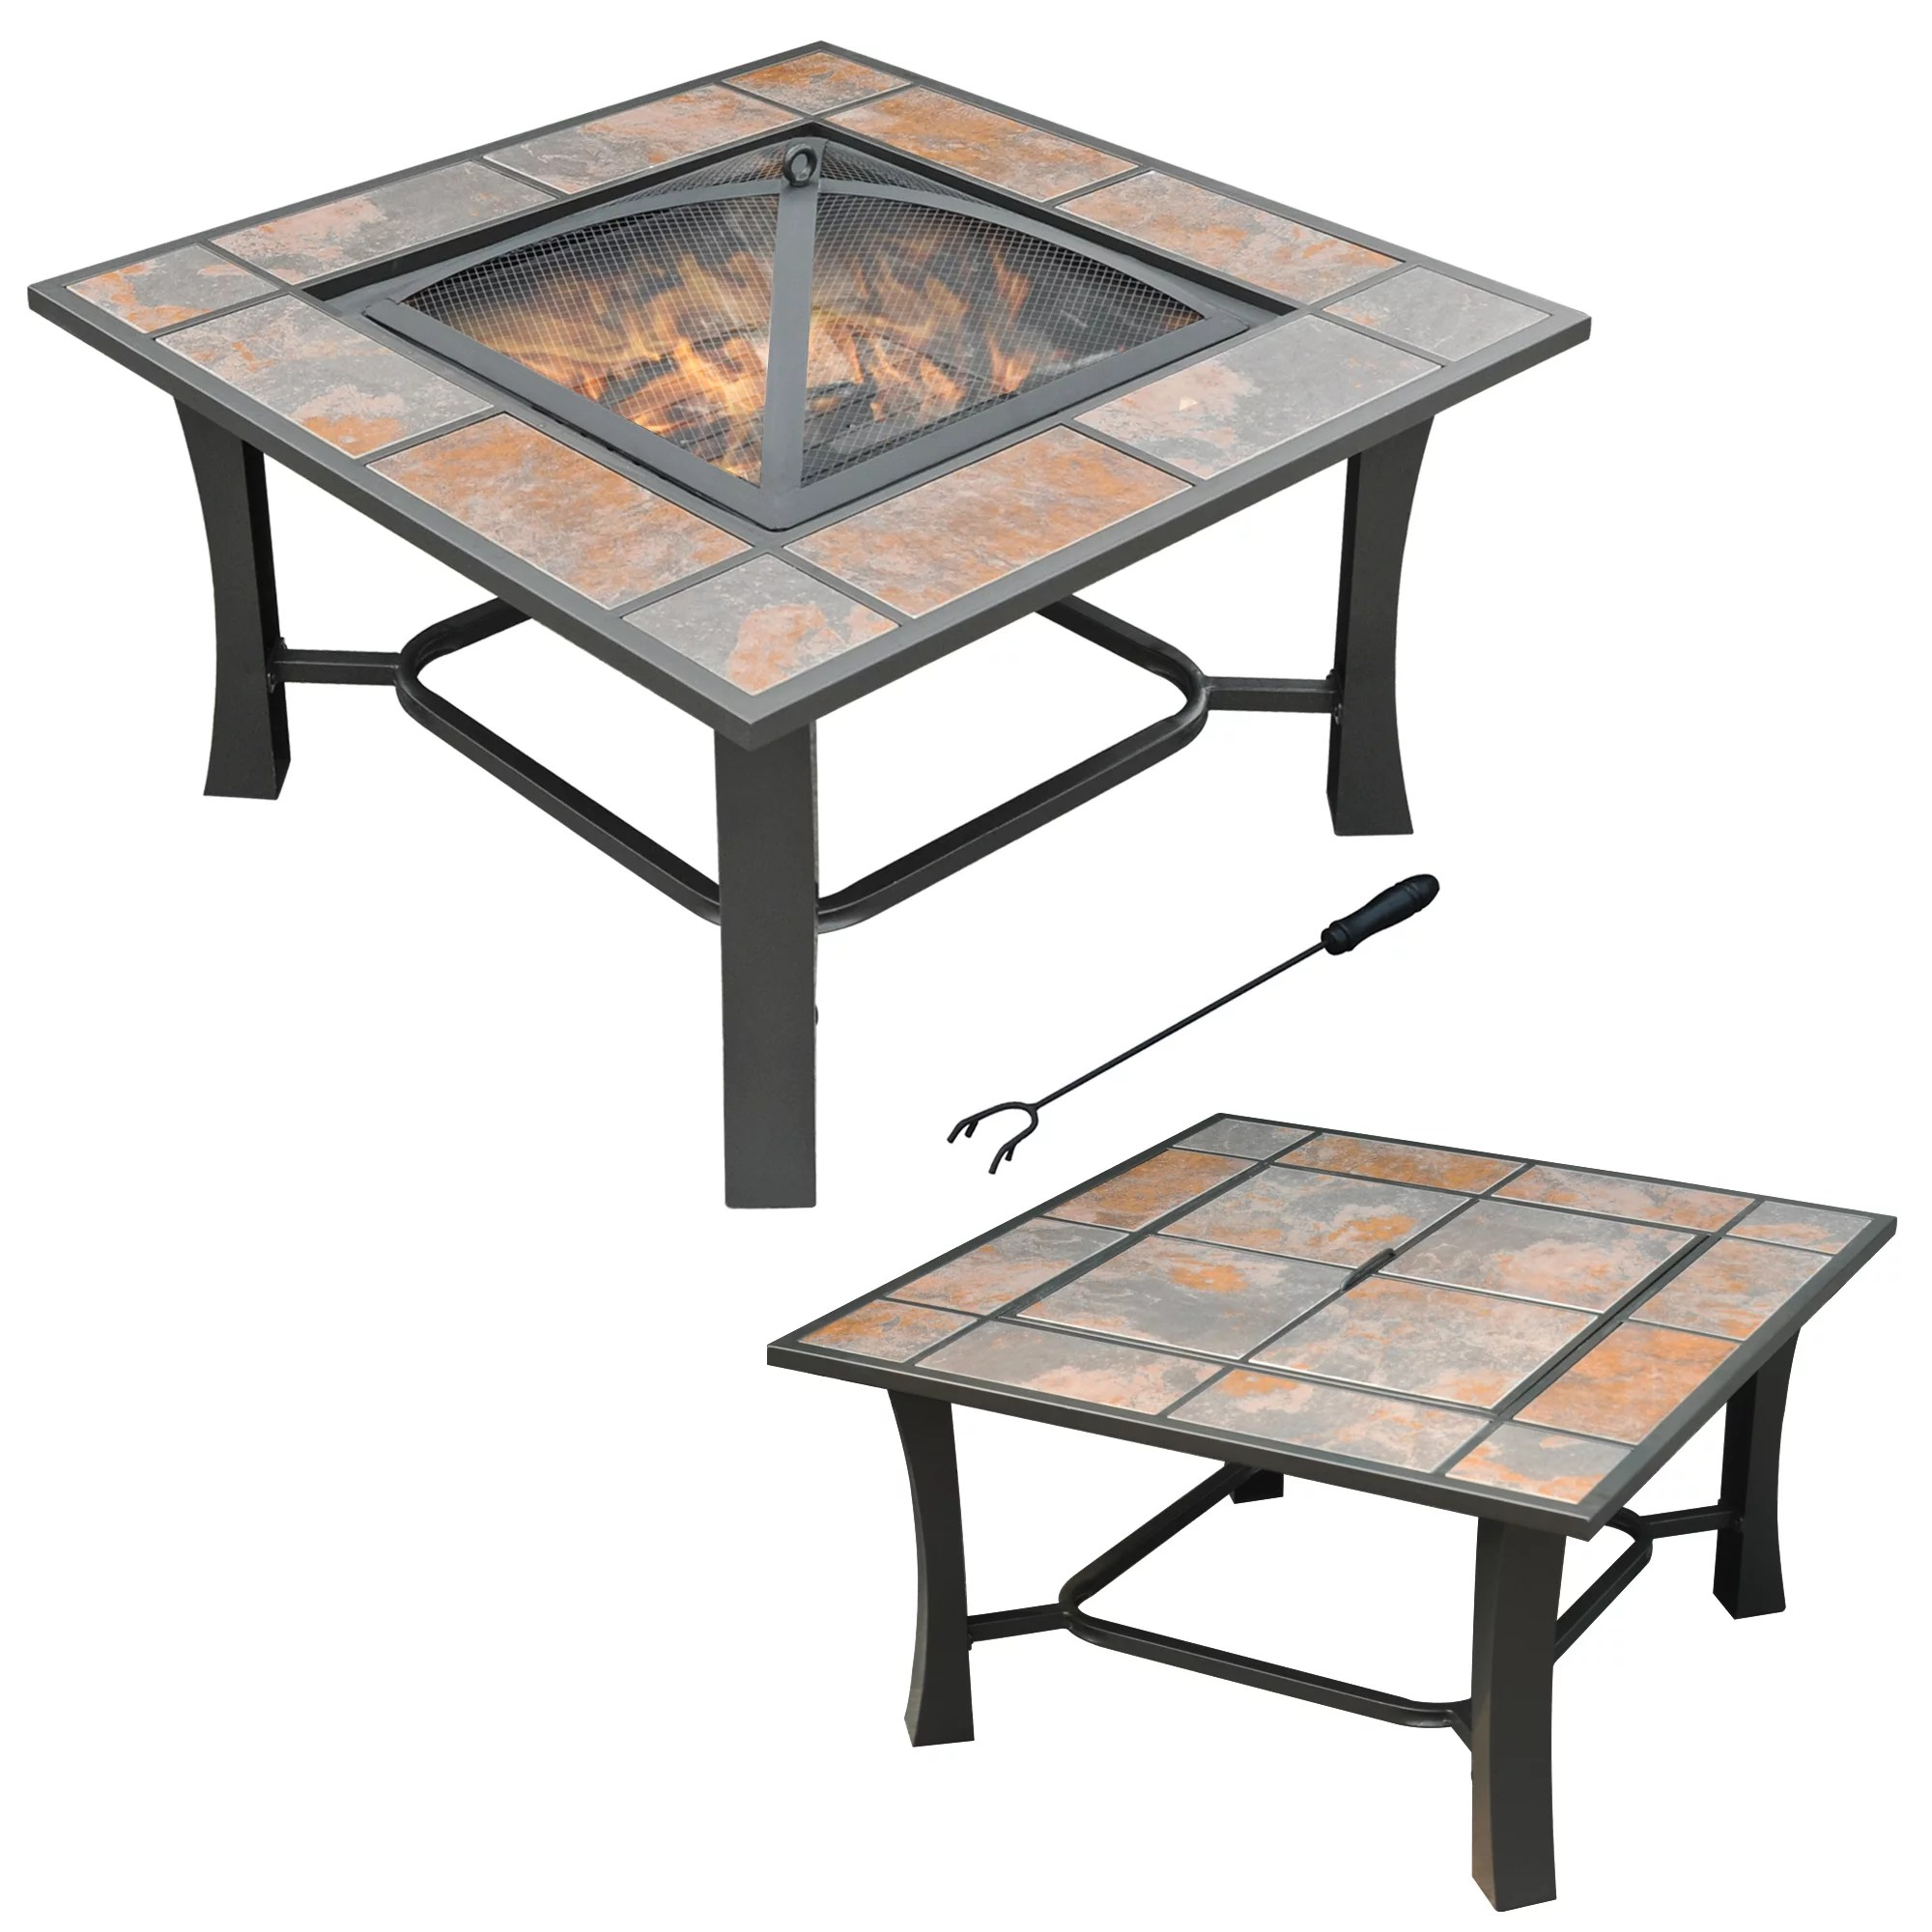 axxonn 32 2 in 1 malaga convertible square tile top fire pit coffee table wood burning fire bowl walmart com